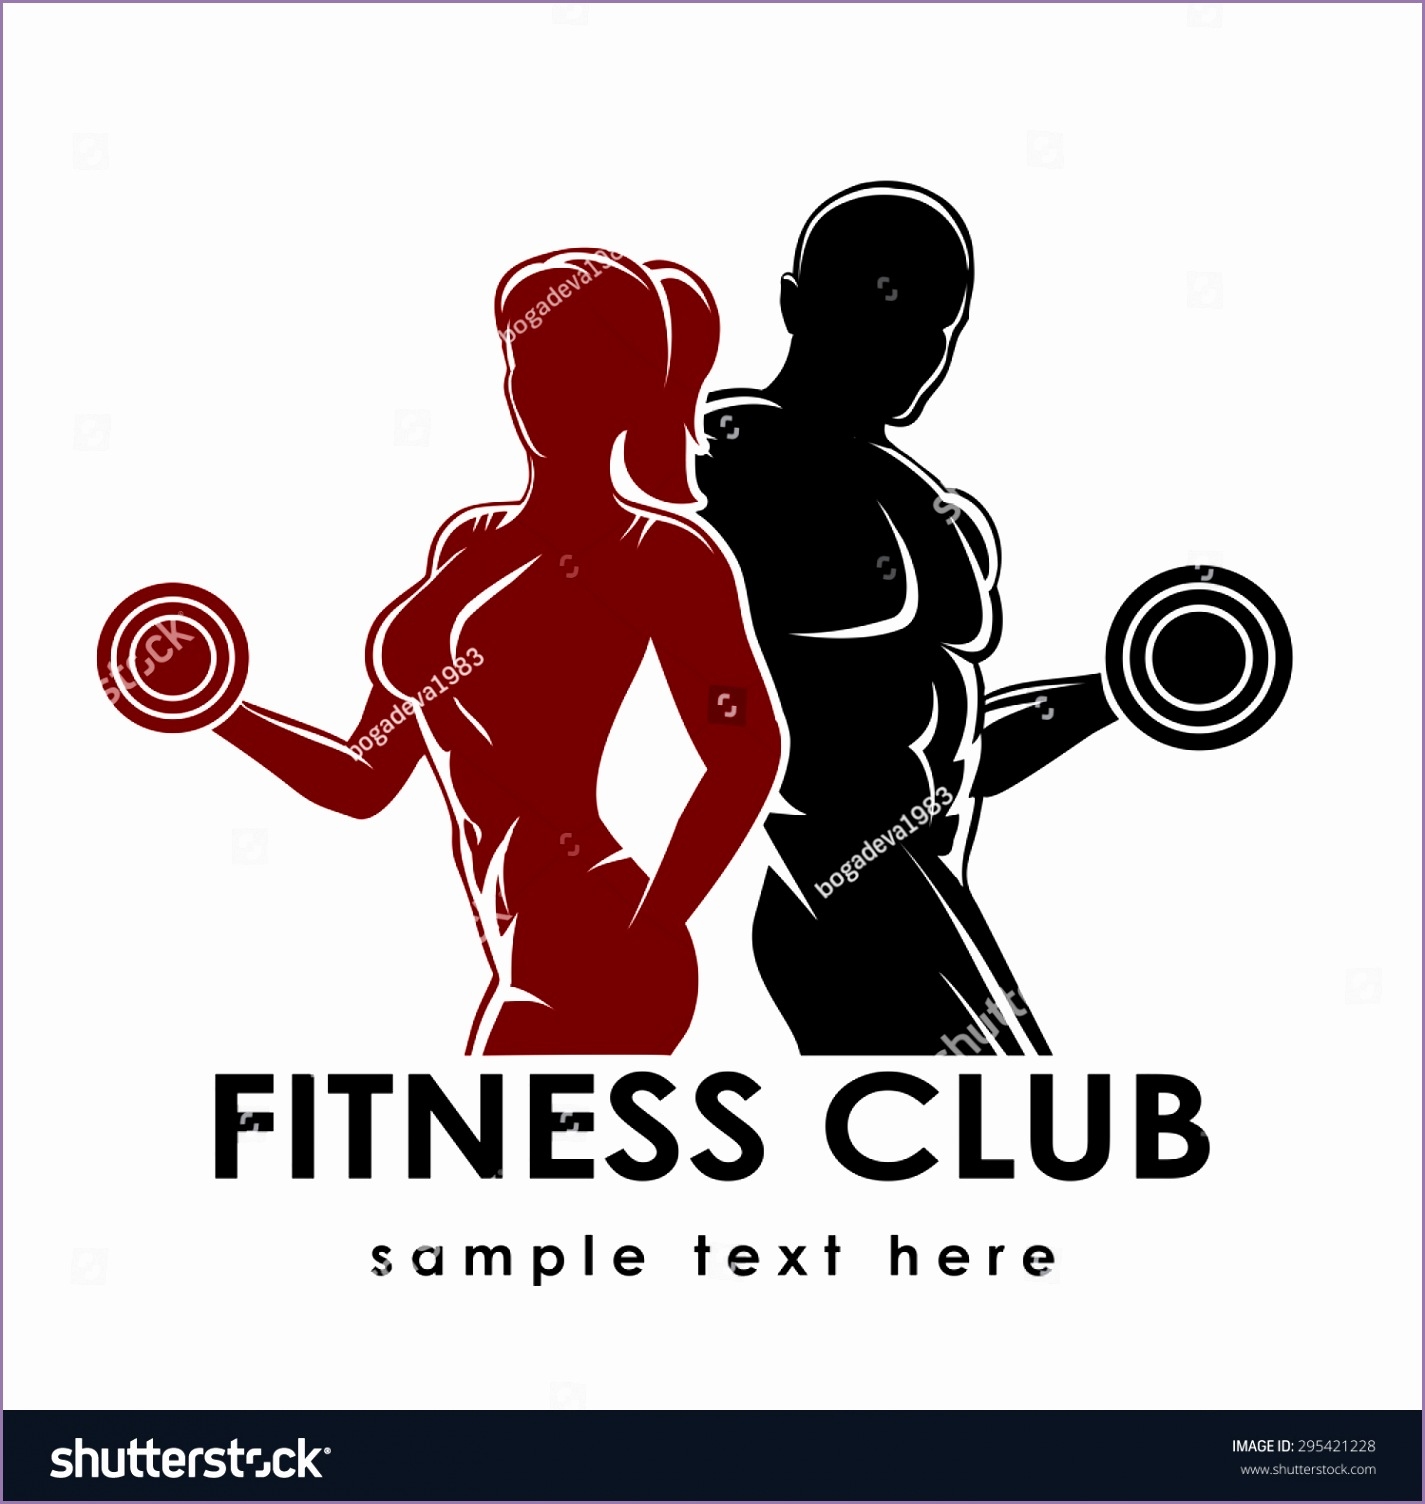 fitness club logo emblem woman man